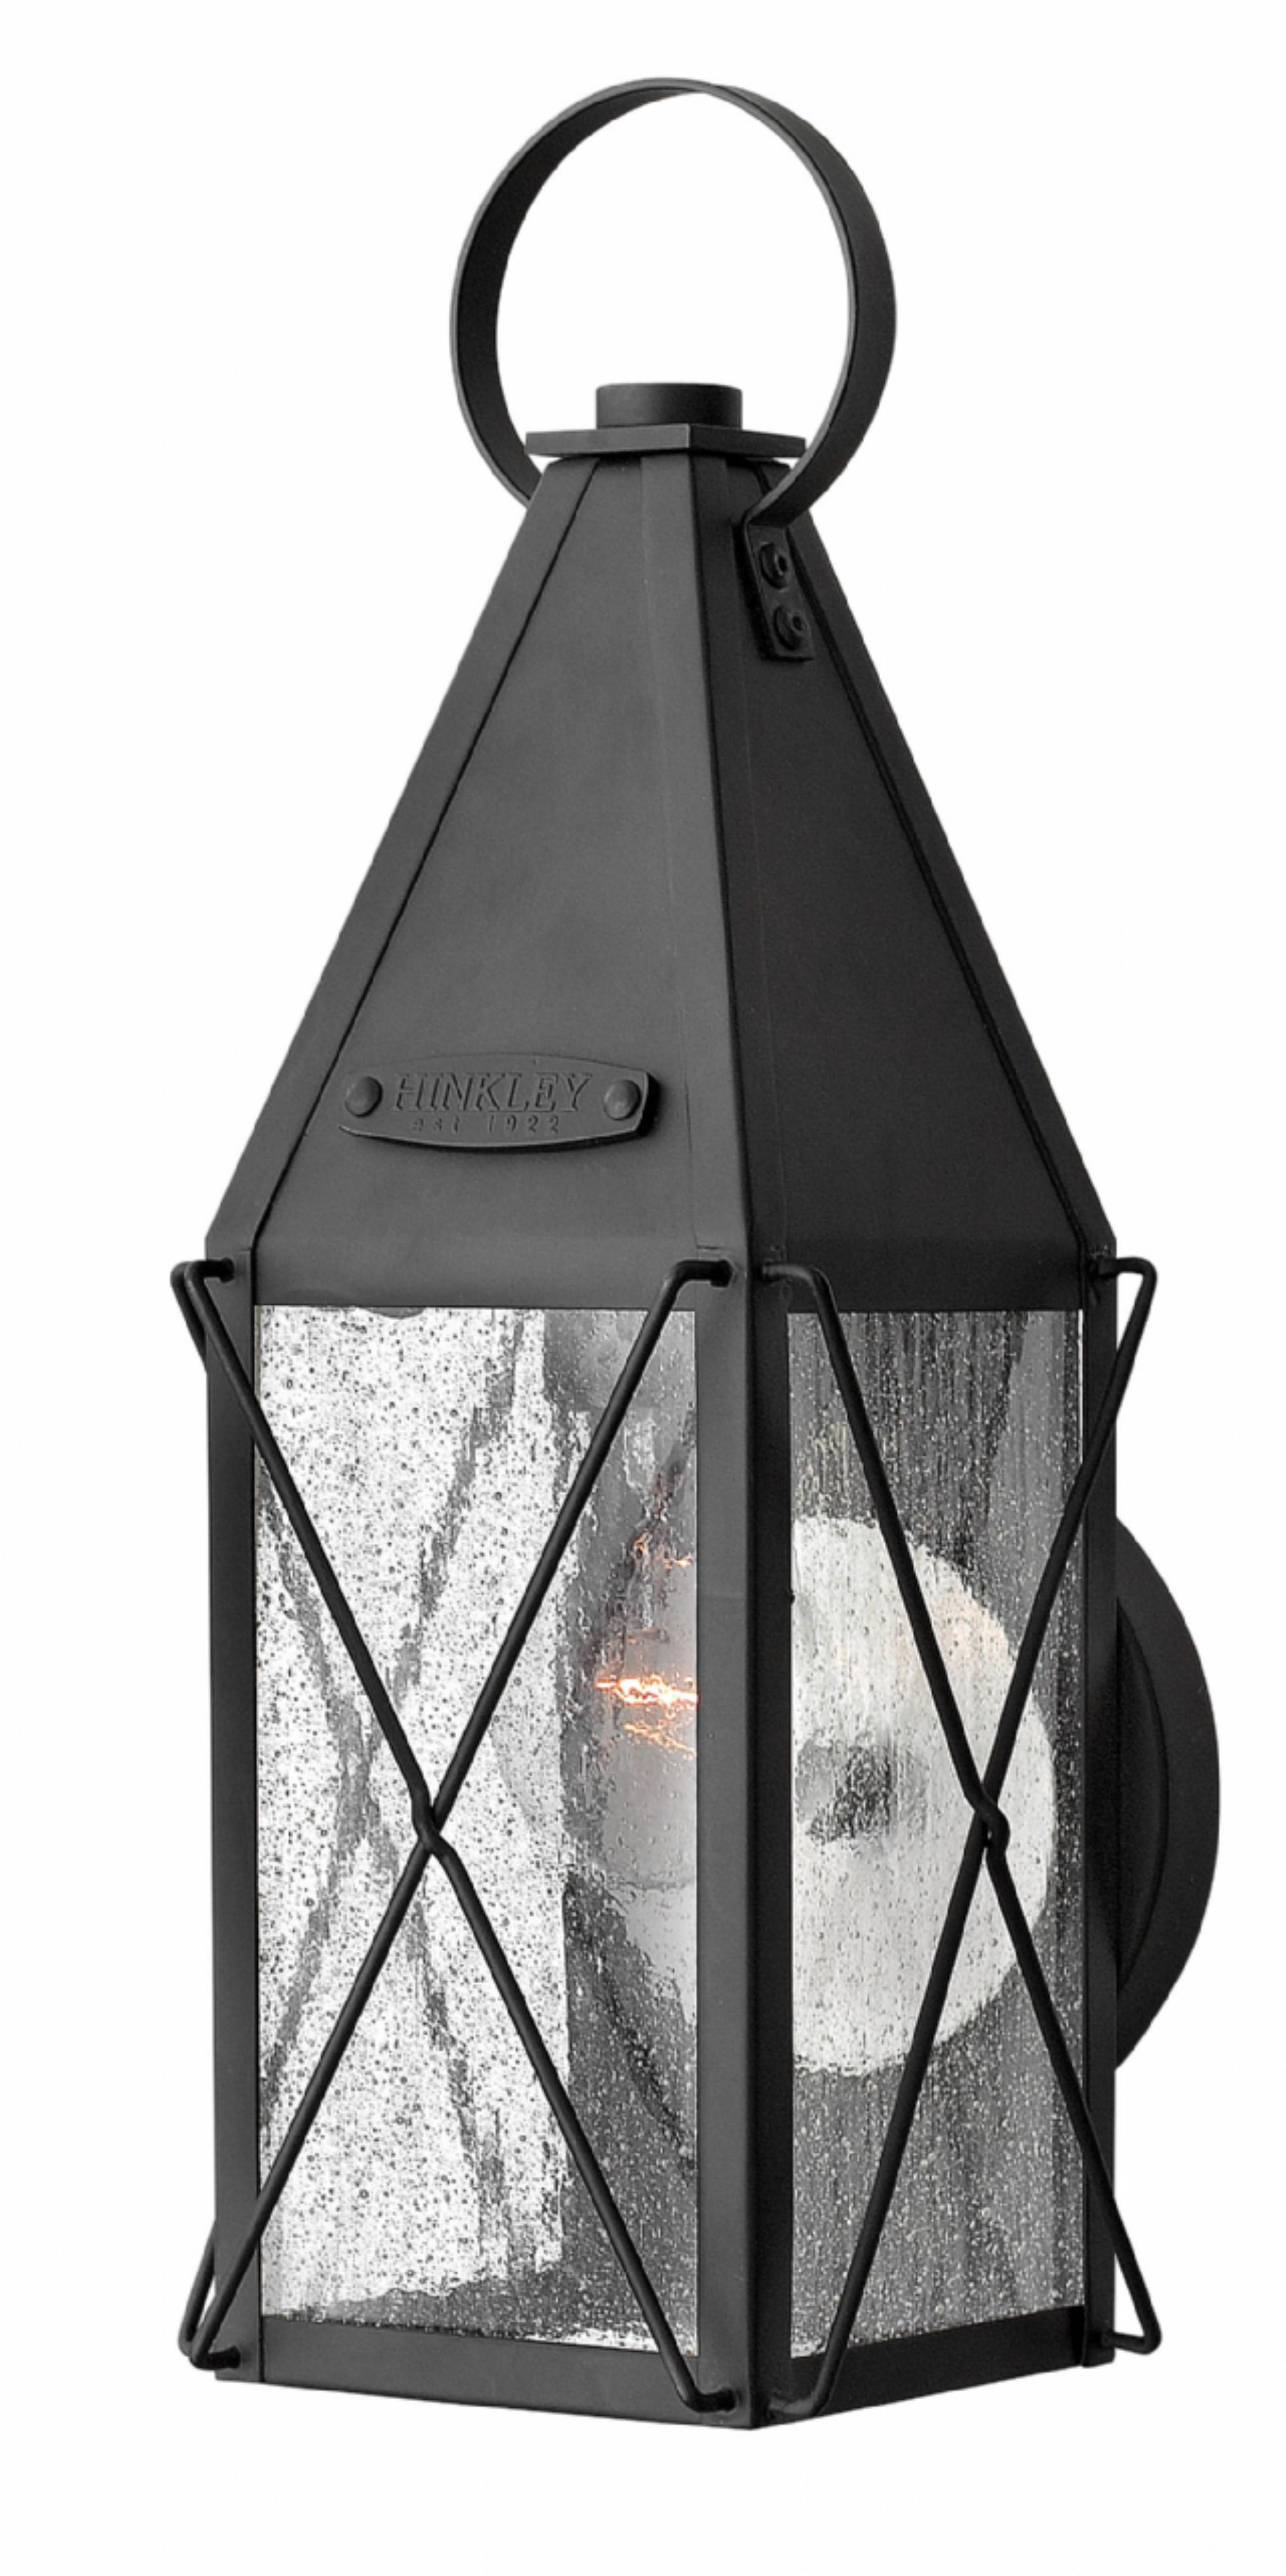 Hinkley lighting carries many black york exterior wall mount light fixtures that can be used to enhance the appearance and lighting of any home